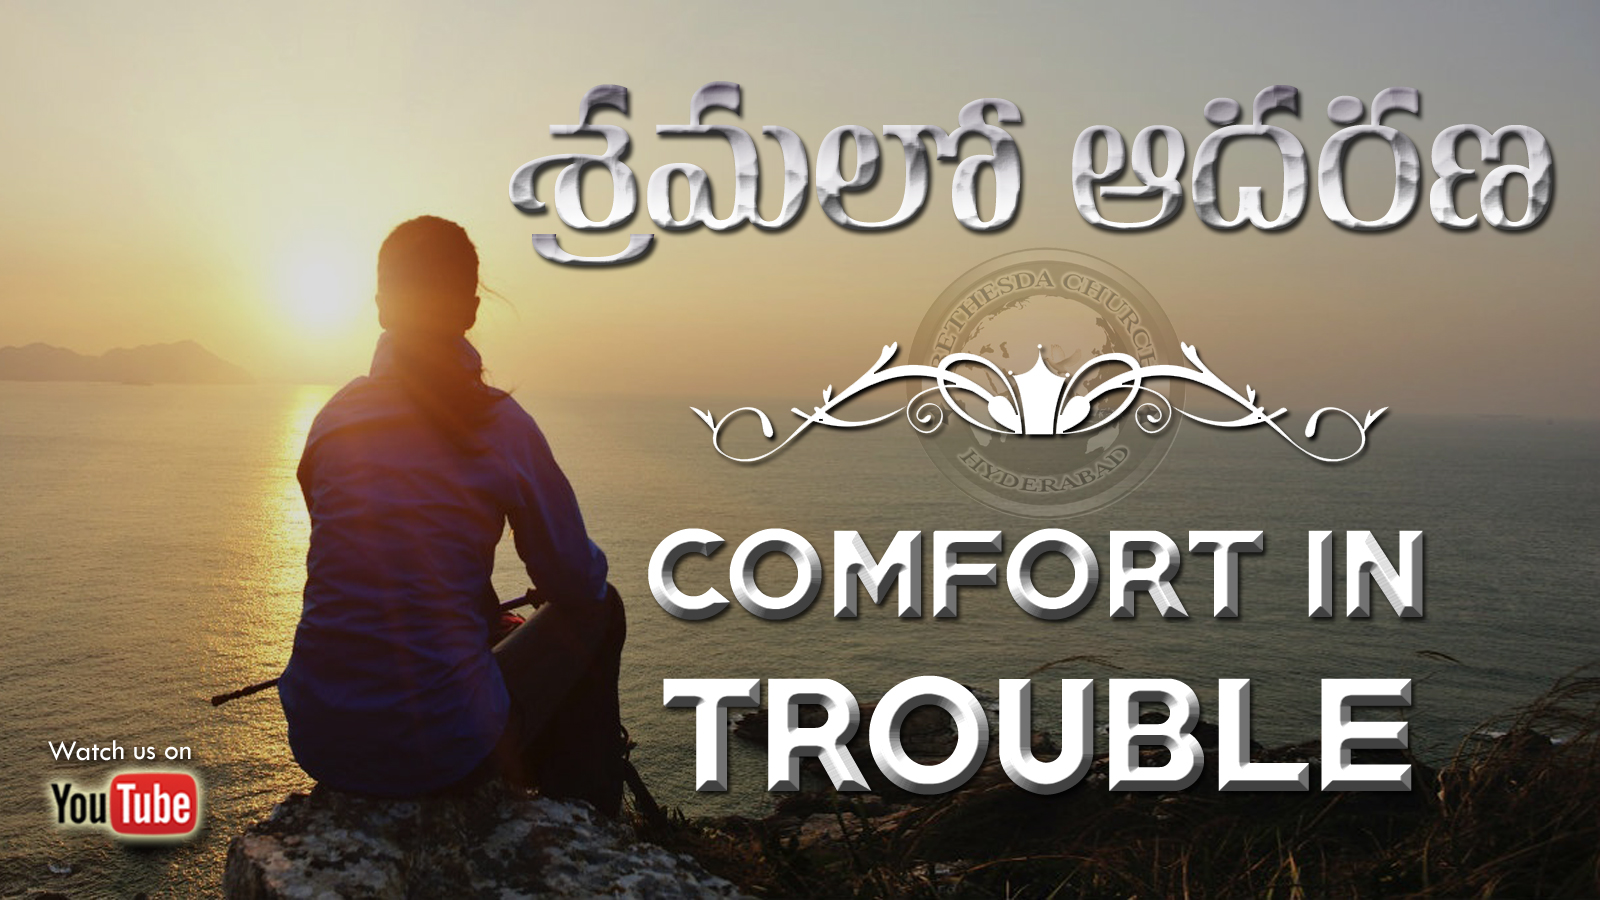 Comfort in trouble (A250)